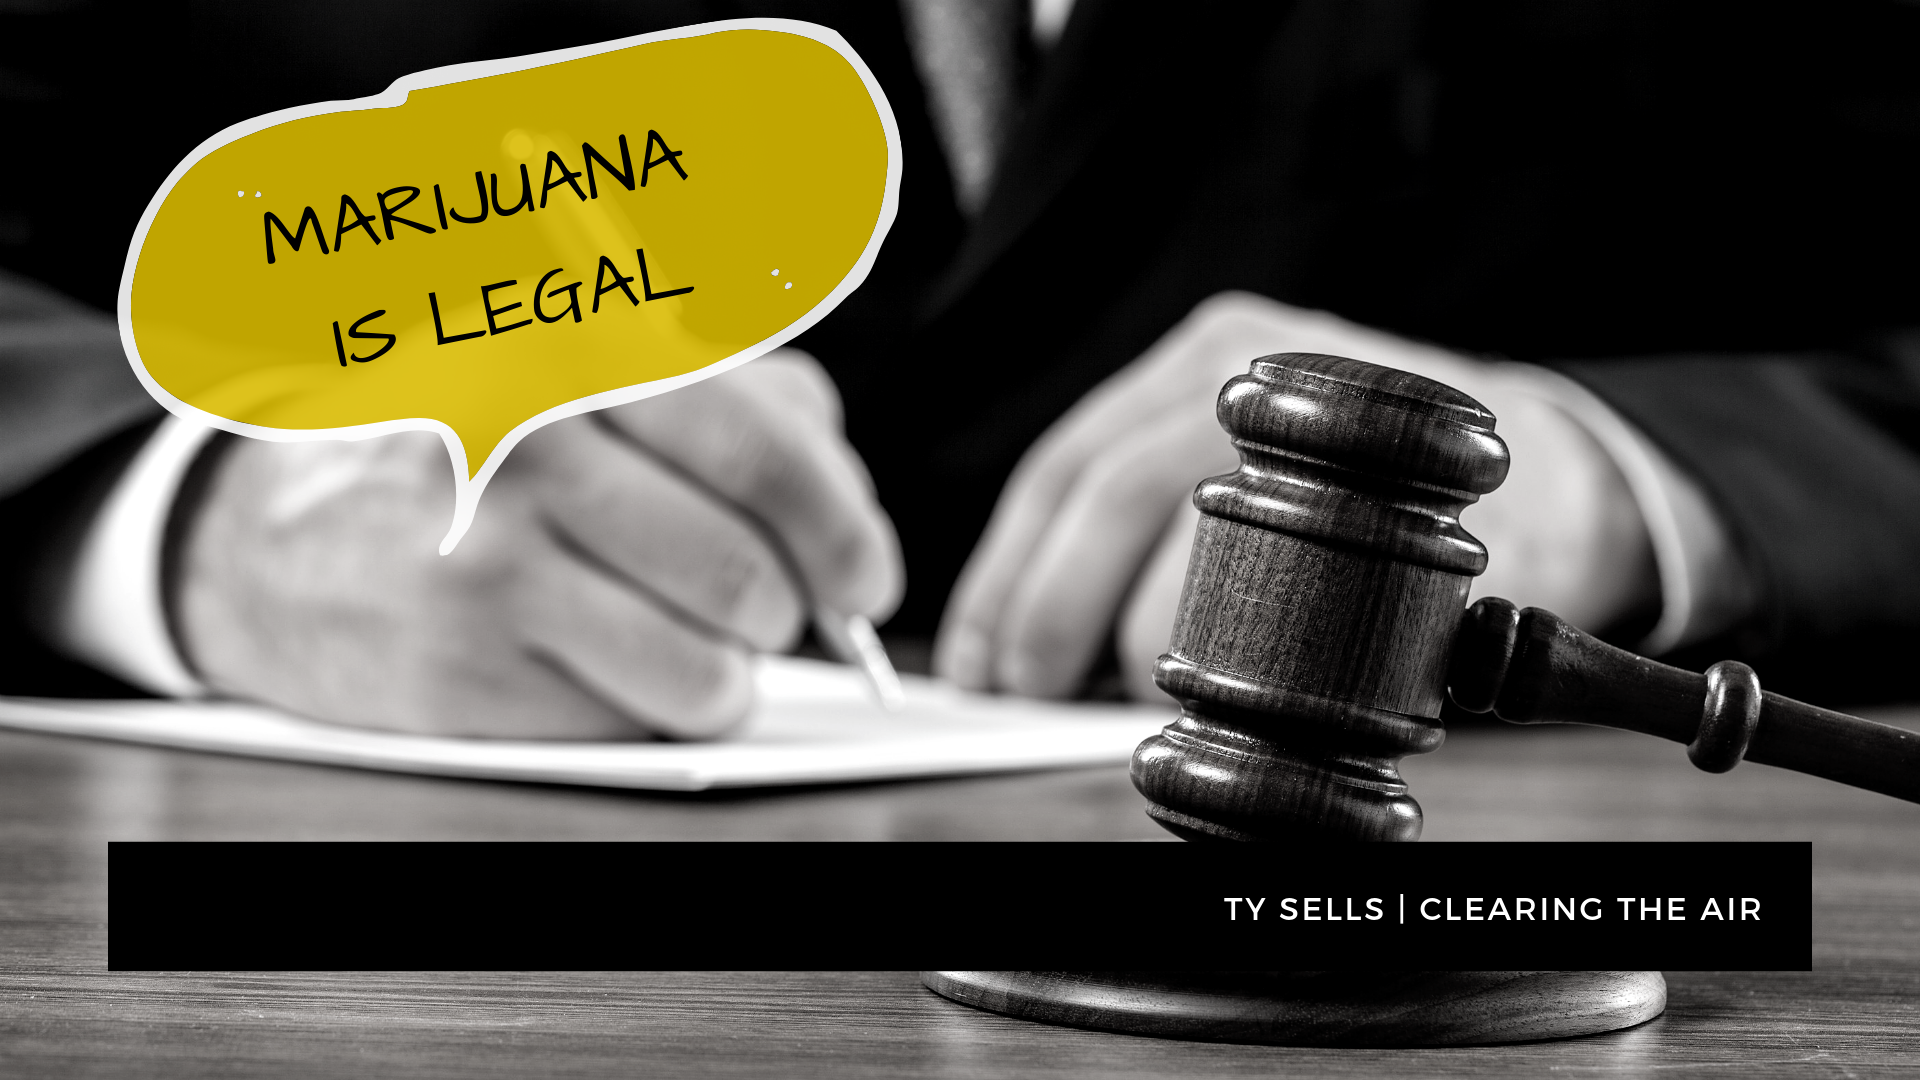 #7: Marijuana is legal.